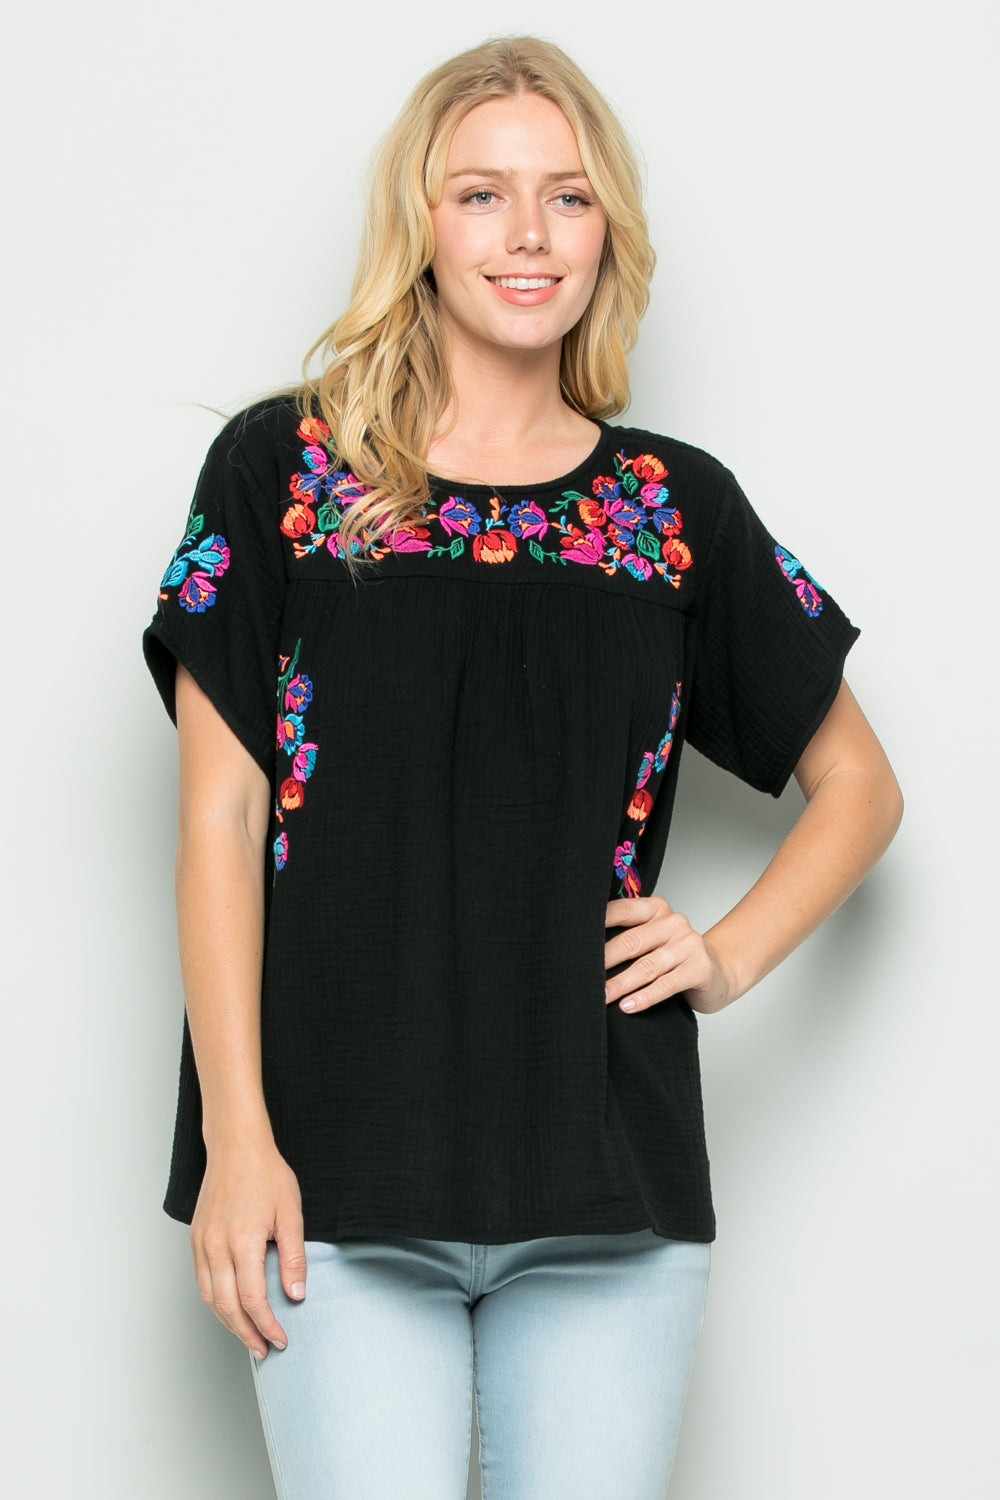 T2185 Floral Embroidery - Black